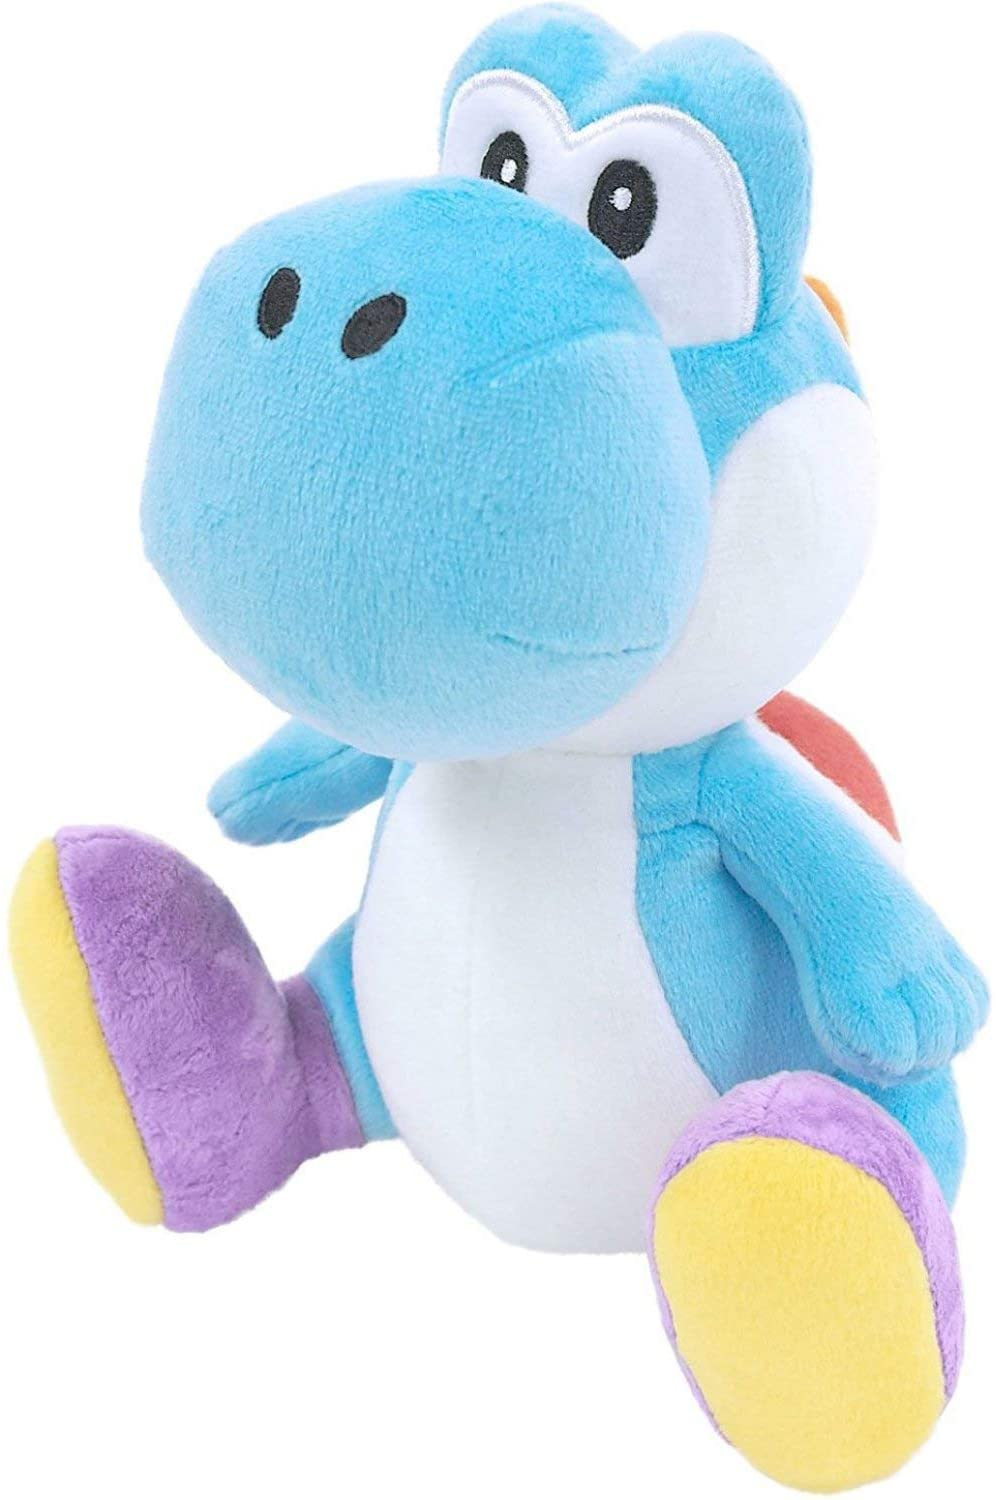 PLUSH YOSHI 8'' LIGHT BLUE